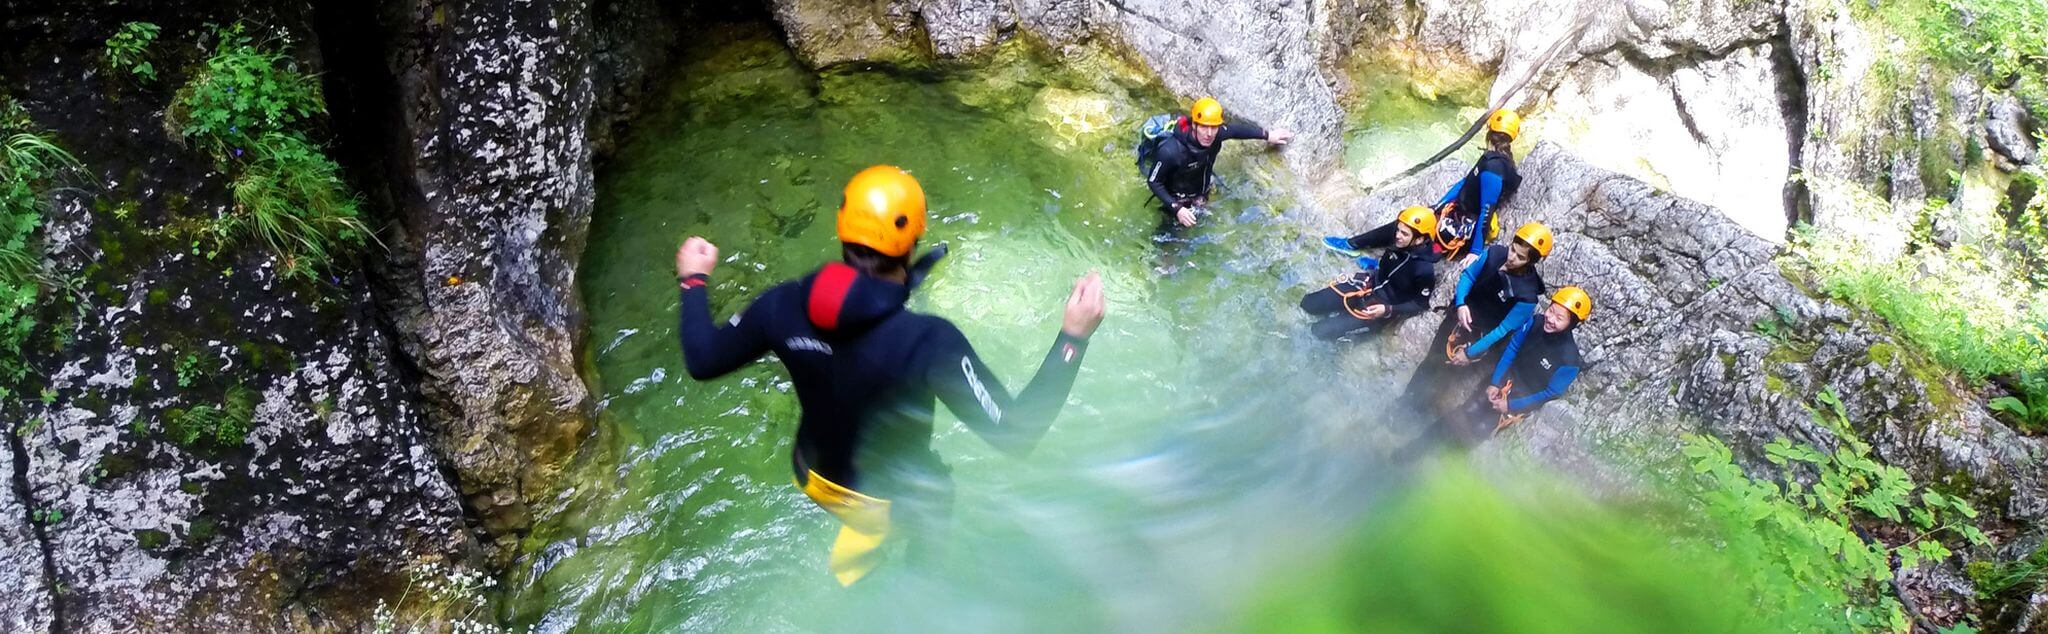 Canyoning in Girona (City)